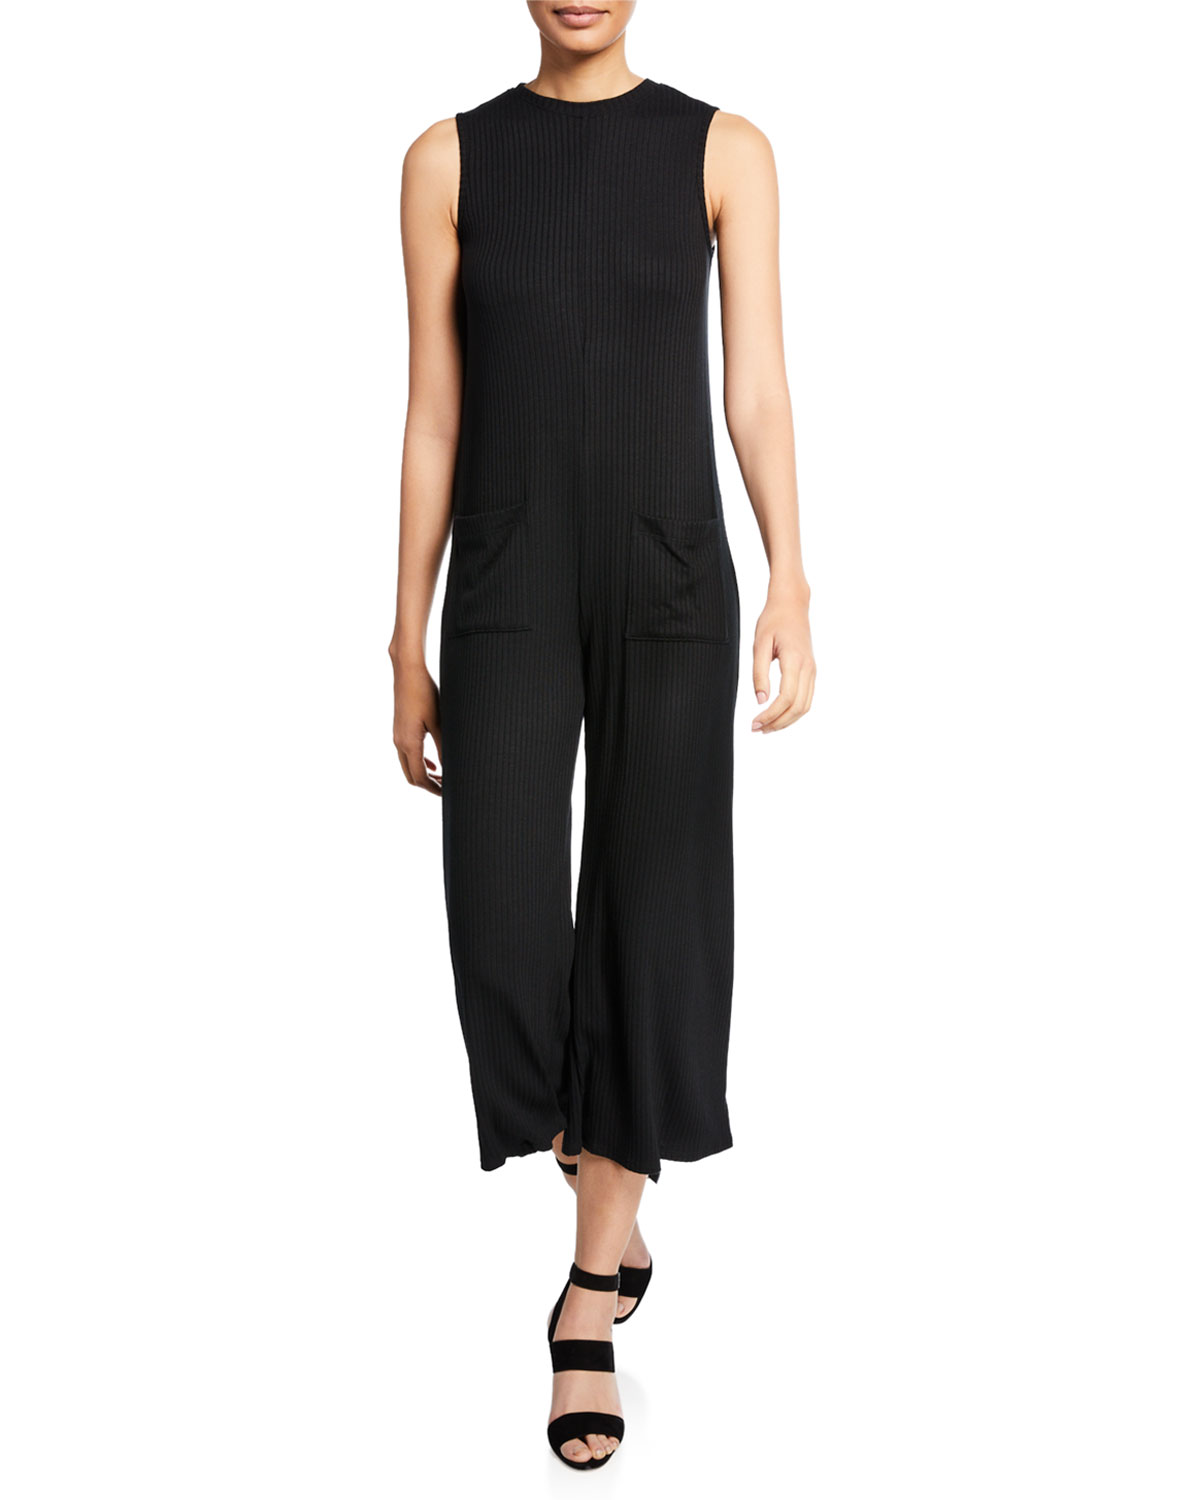 RACHEL PALLY Cassius Ribbed Sleeveless Jumpsuit in Black